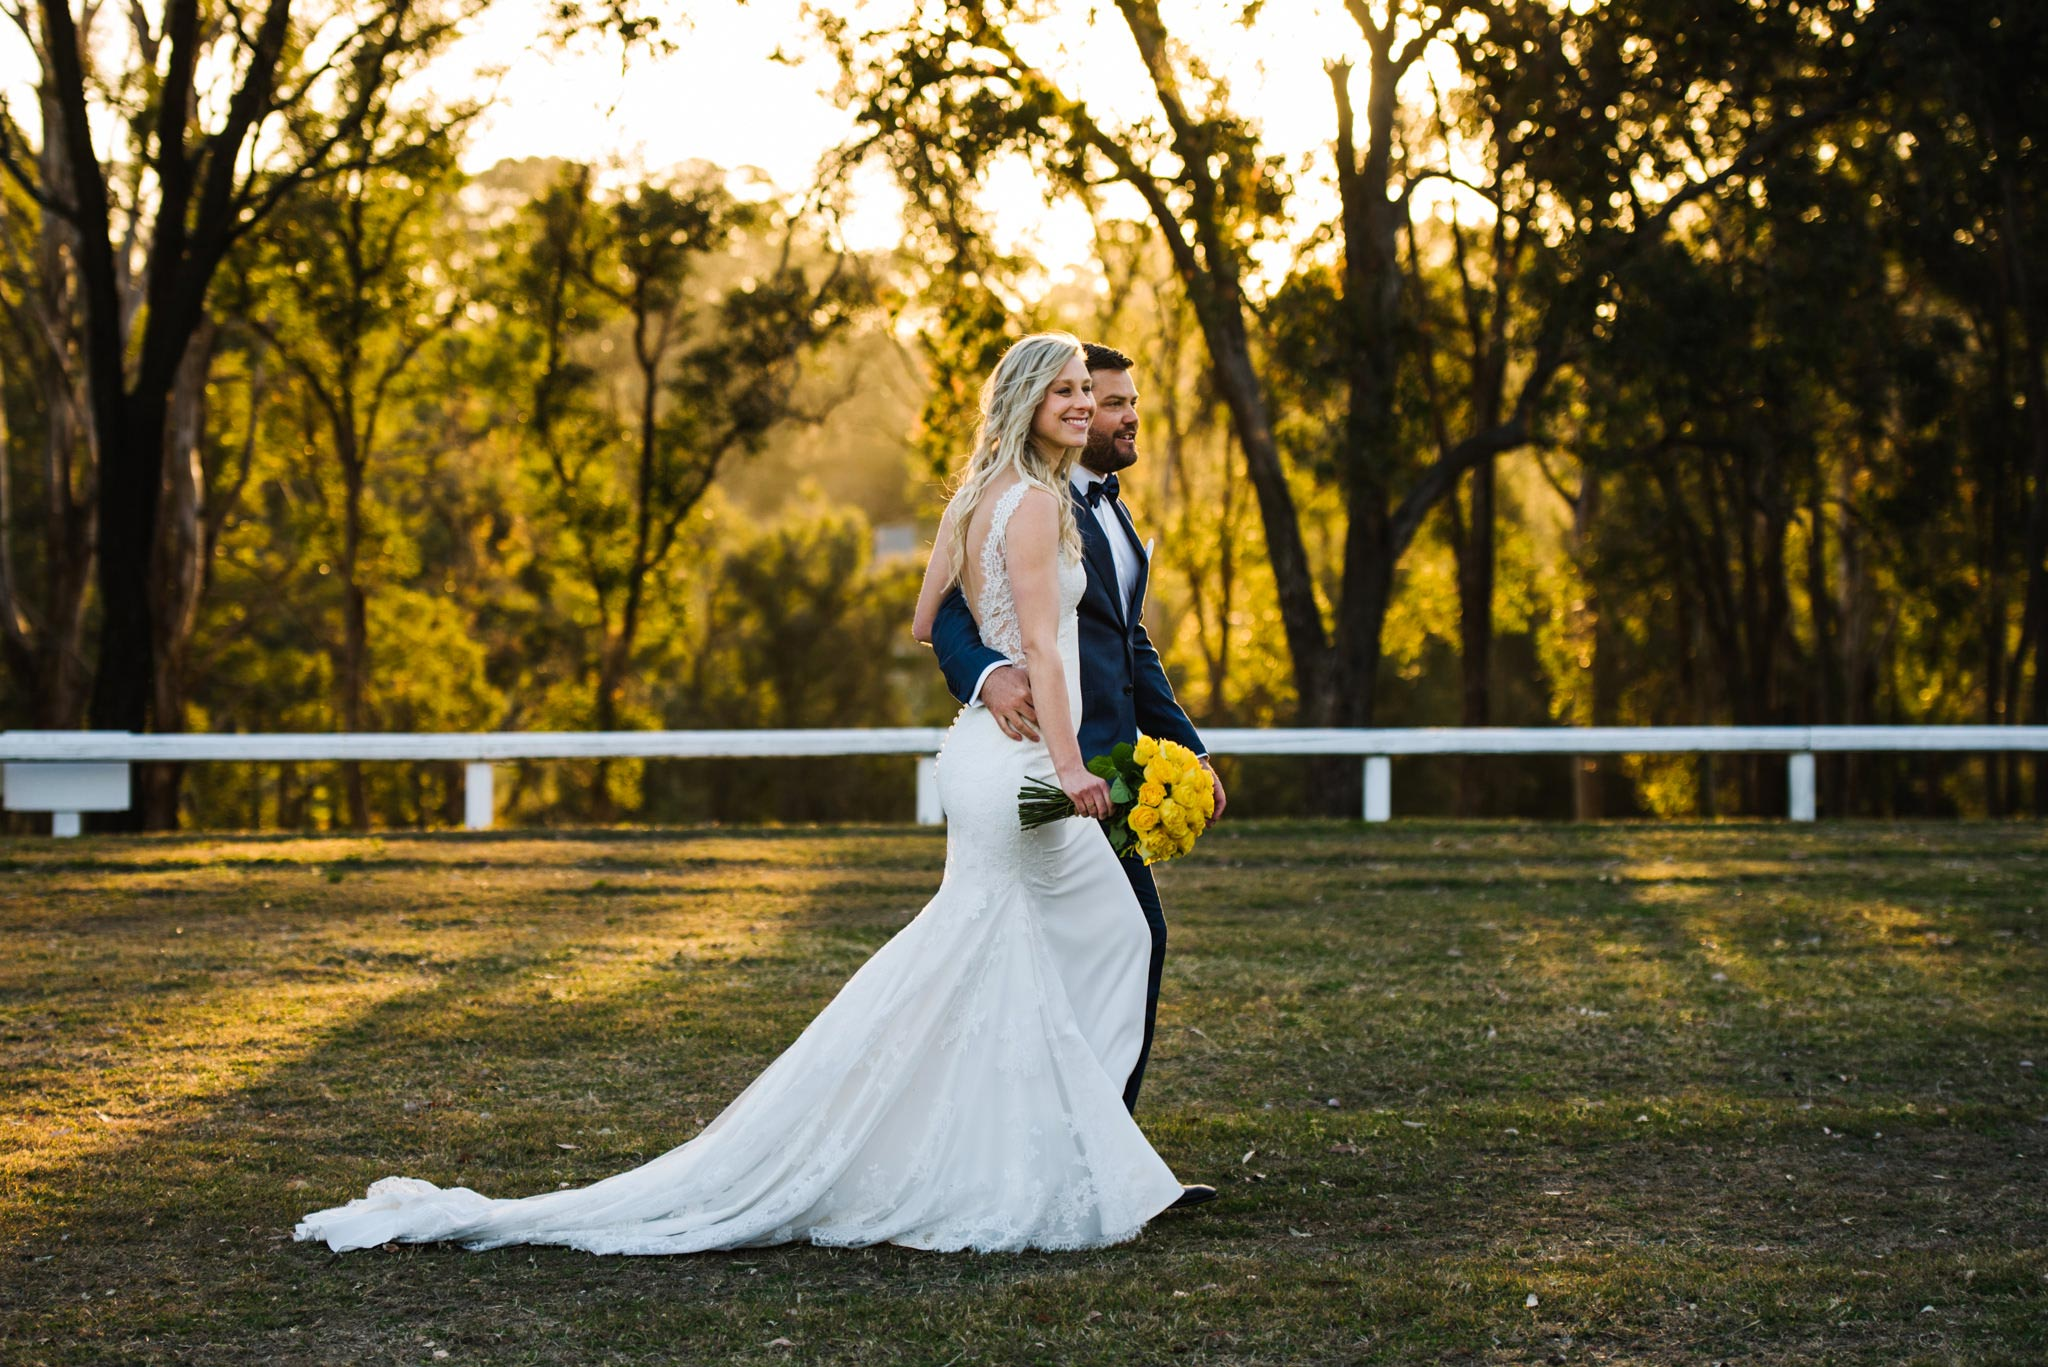 Bride and groom walking through field with colourful trees in background